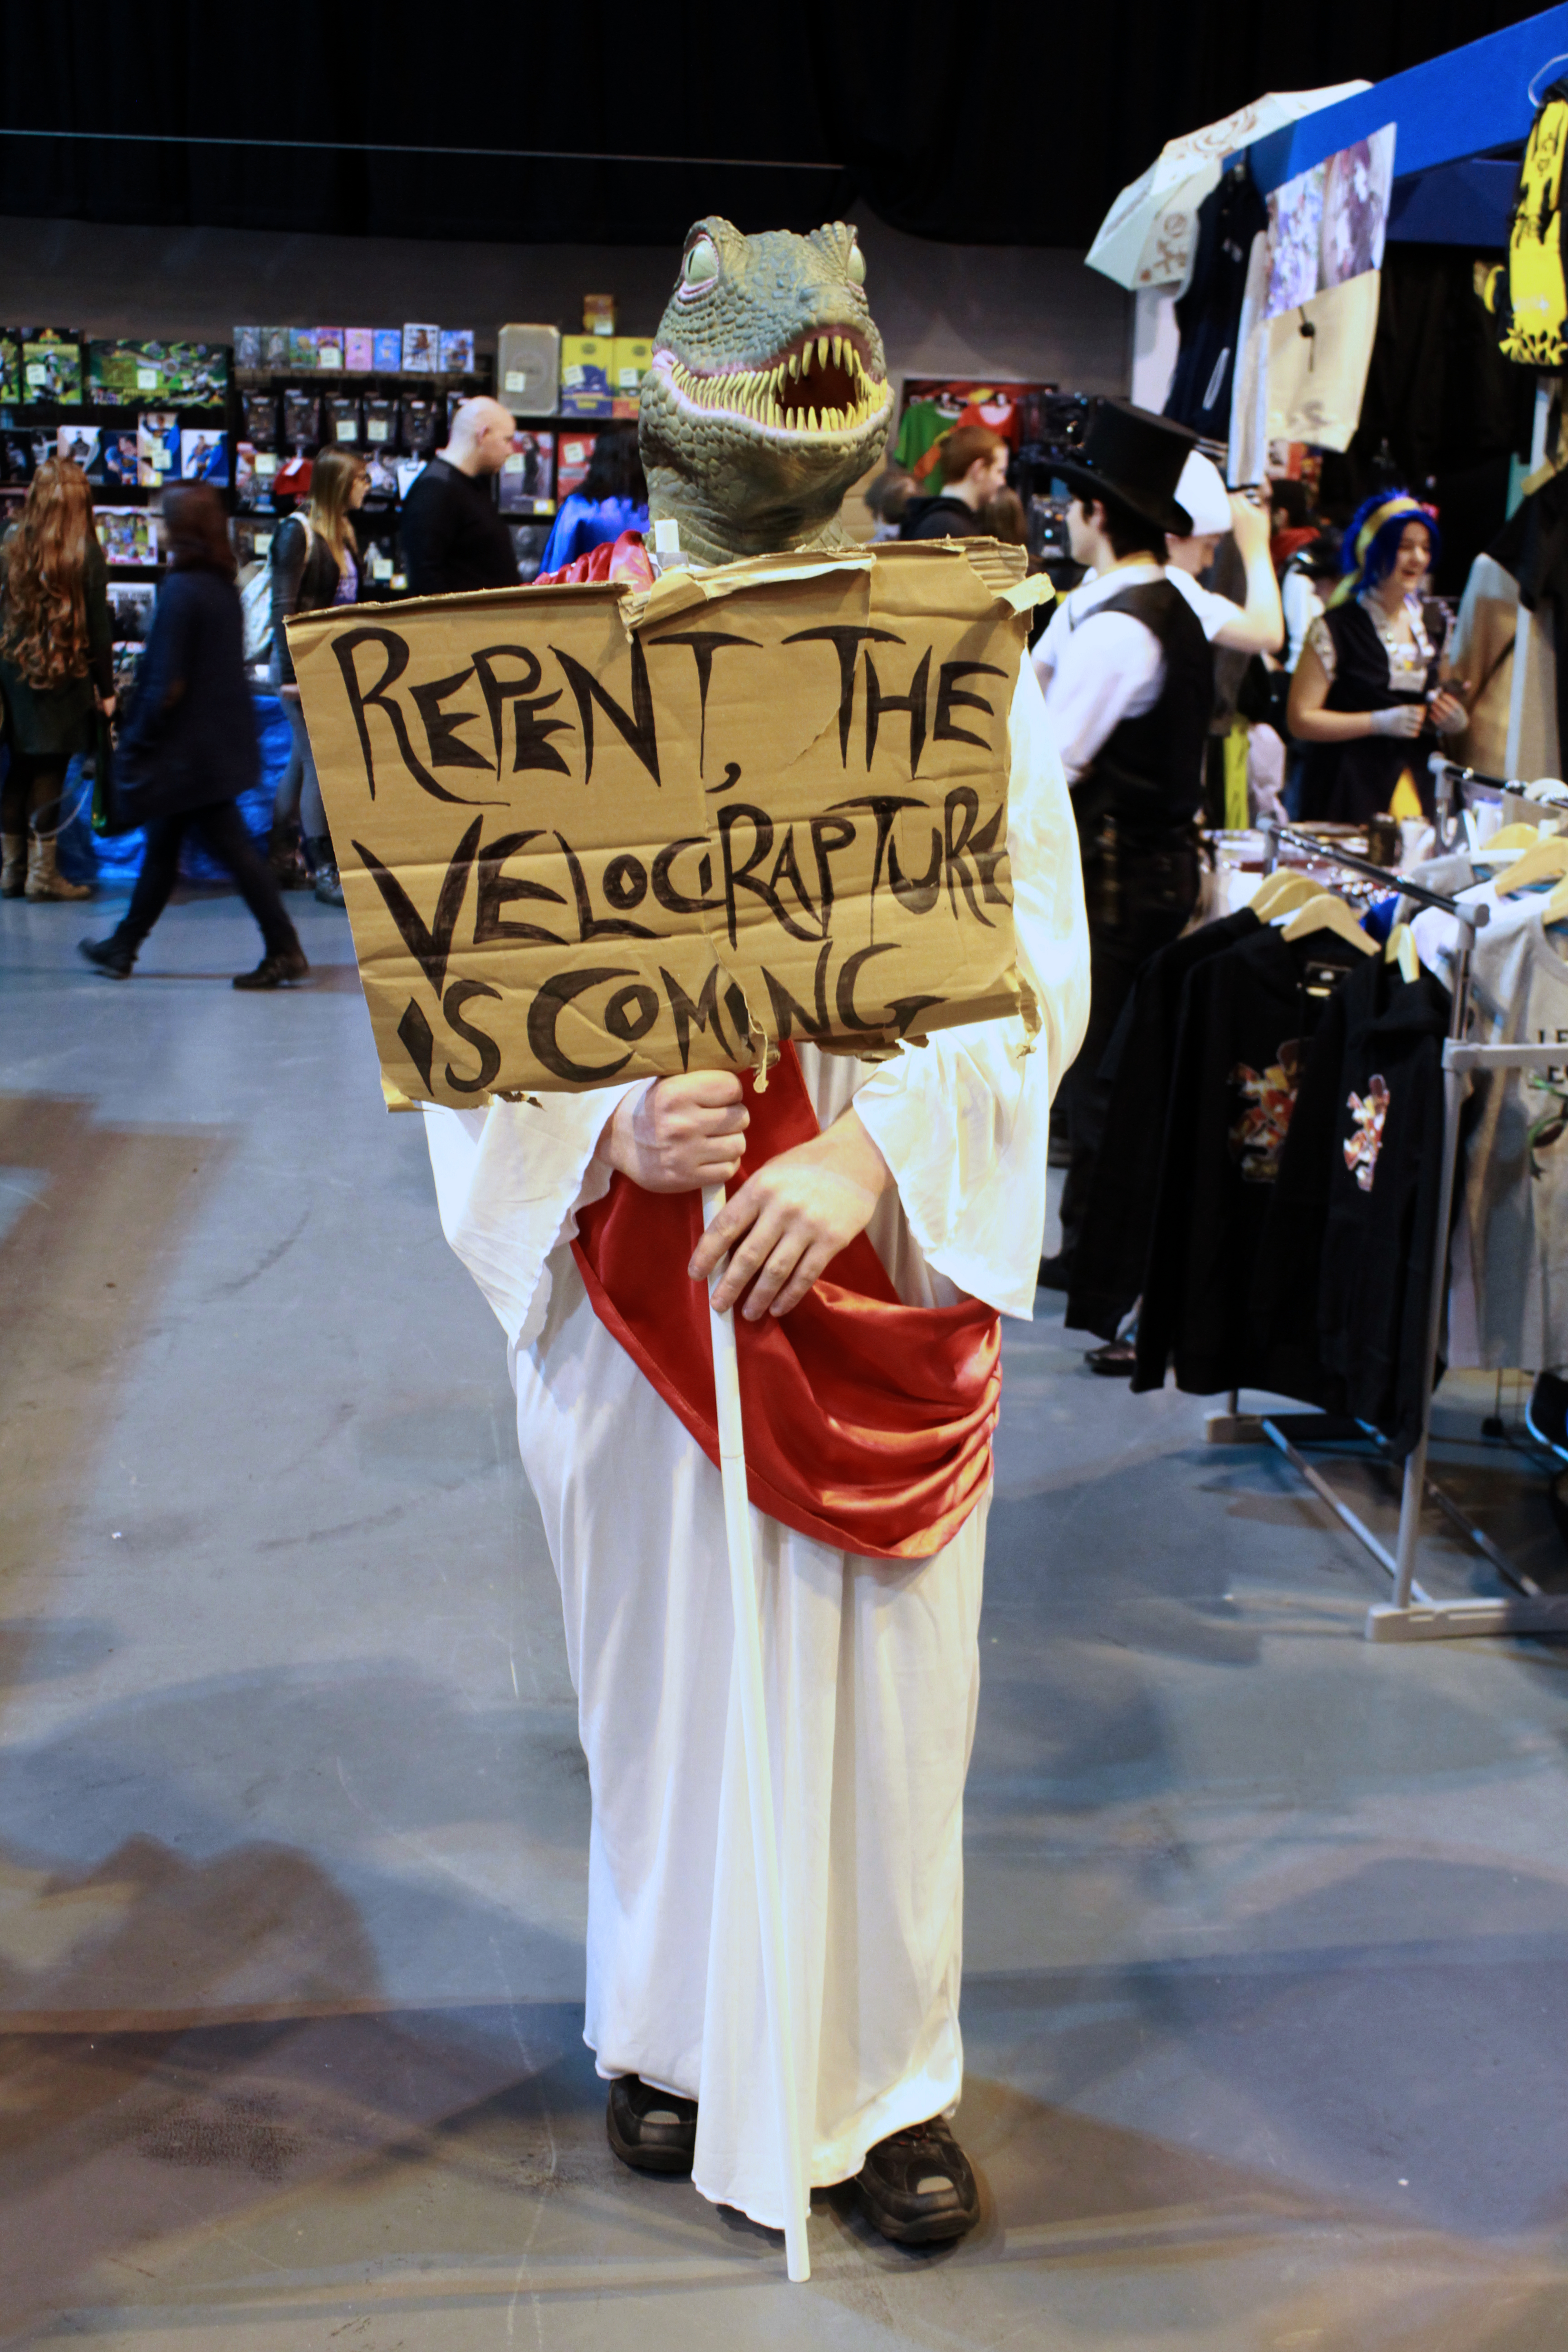 REPENT! THE VELOSO-RAPTURE IS UPON US! MCM Midlands, Feb 2015